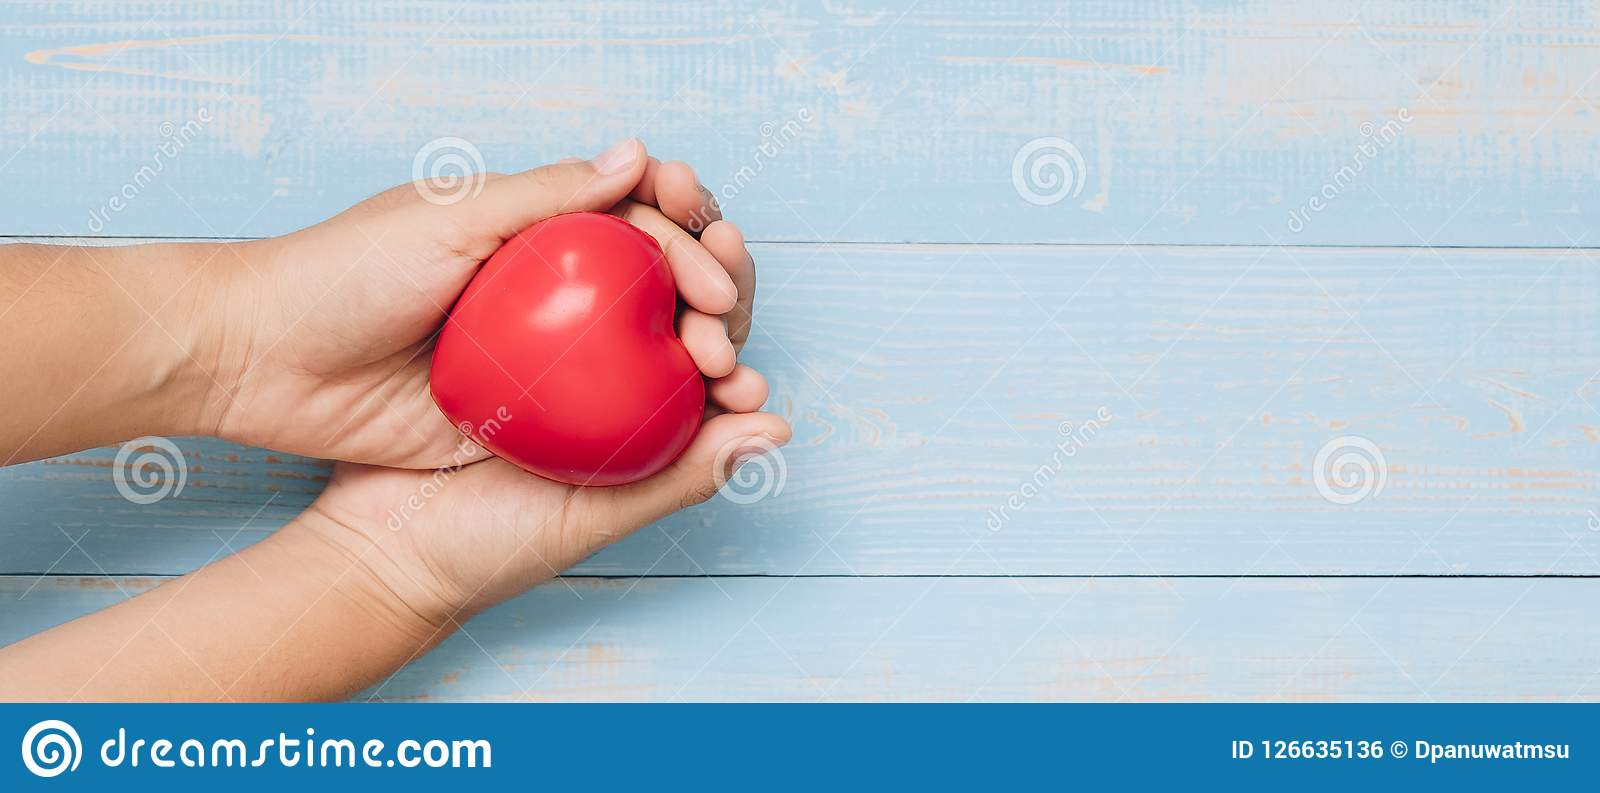 red heart shape on pastel color wooden background. healthcare, organ donation, and insurance or Love and Valentine Day Concept